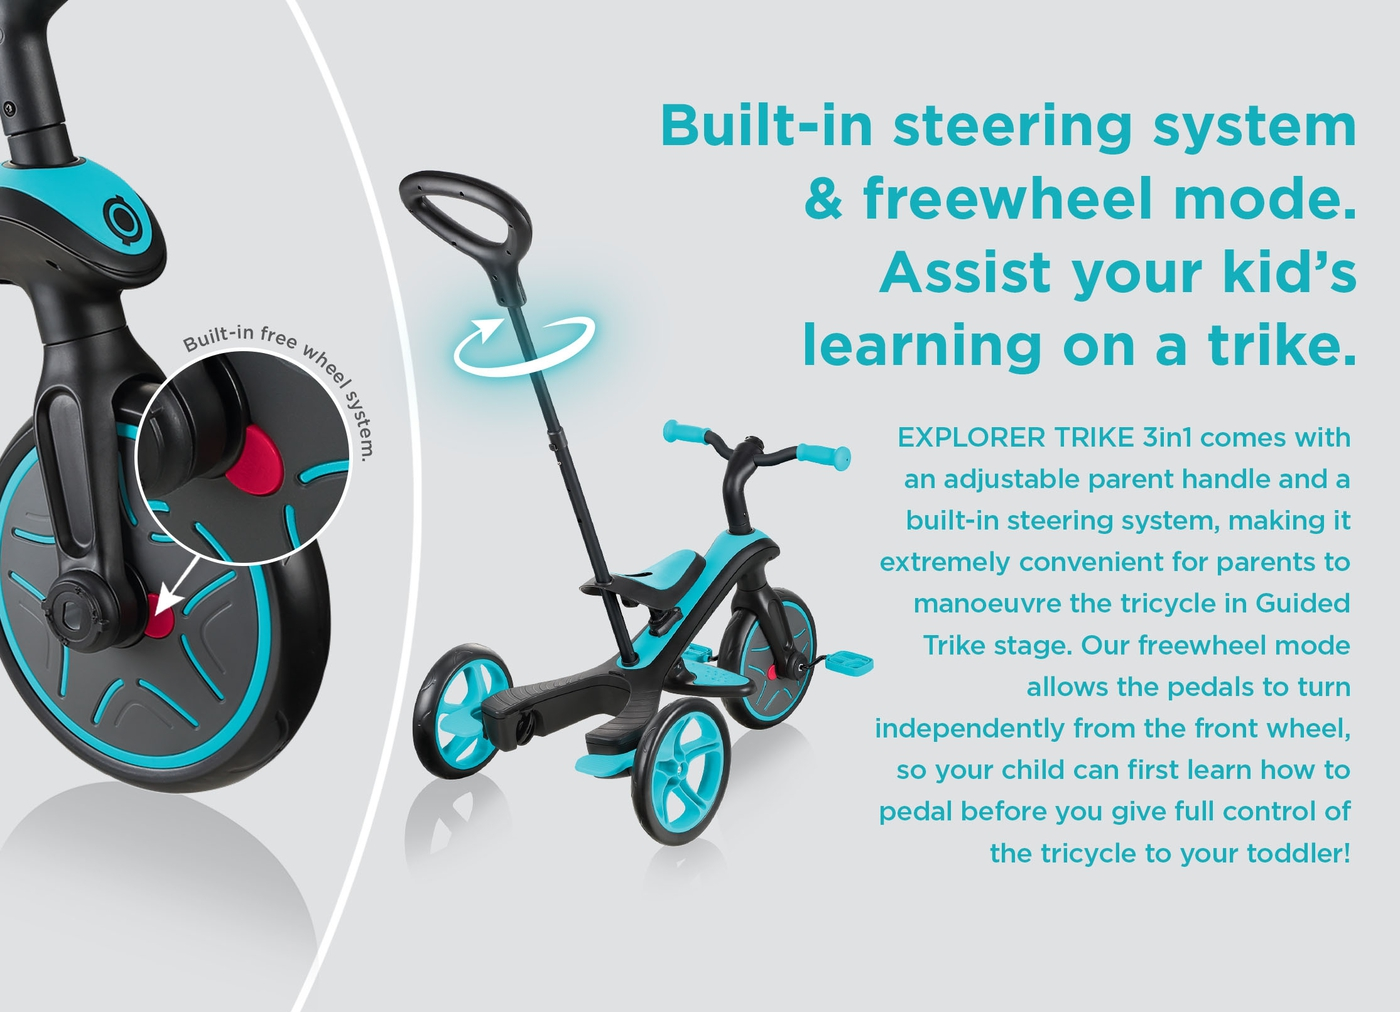 Built-in steering system & freewheel mode. Assist your kid's learning on a trike.